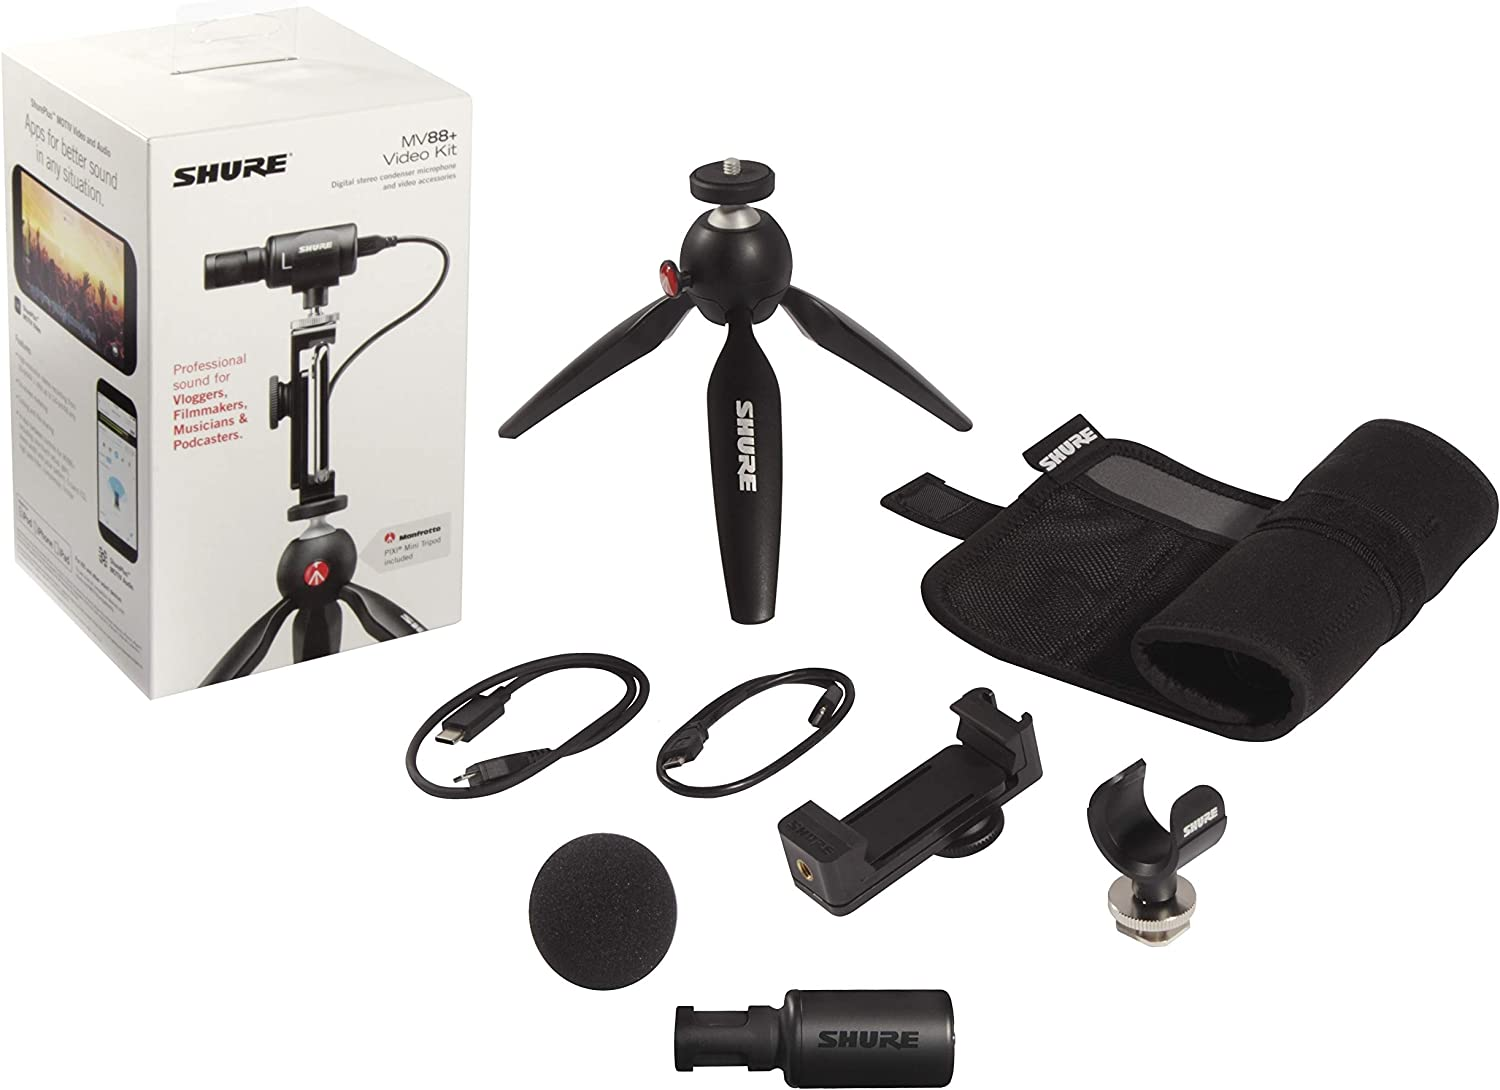 Shure Portable Videography Bundle